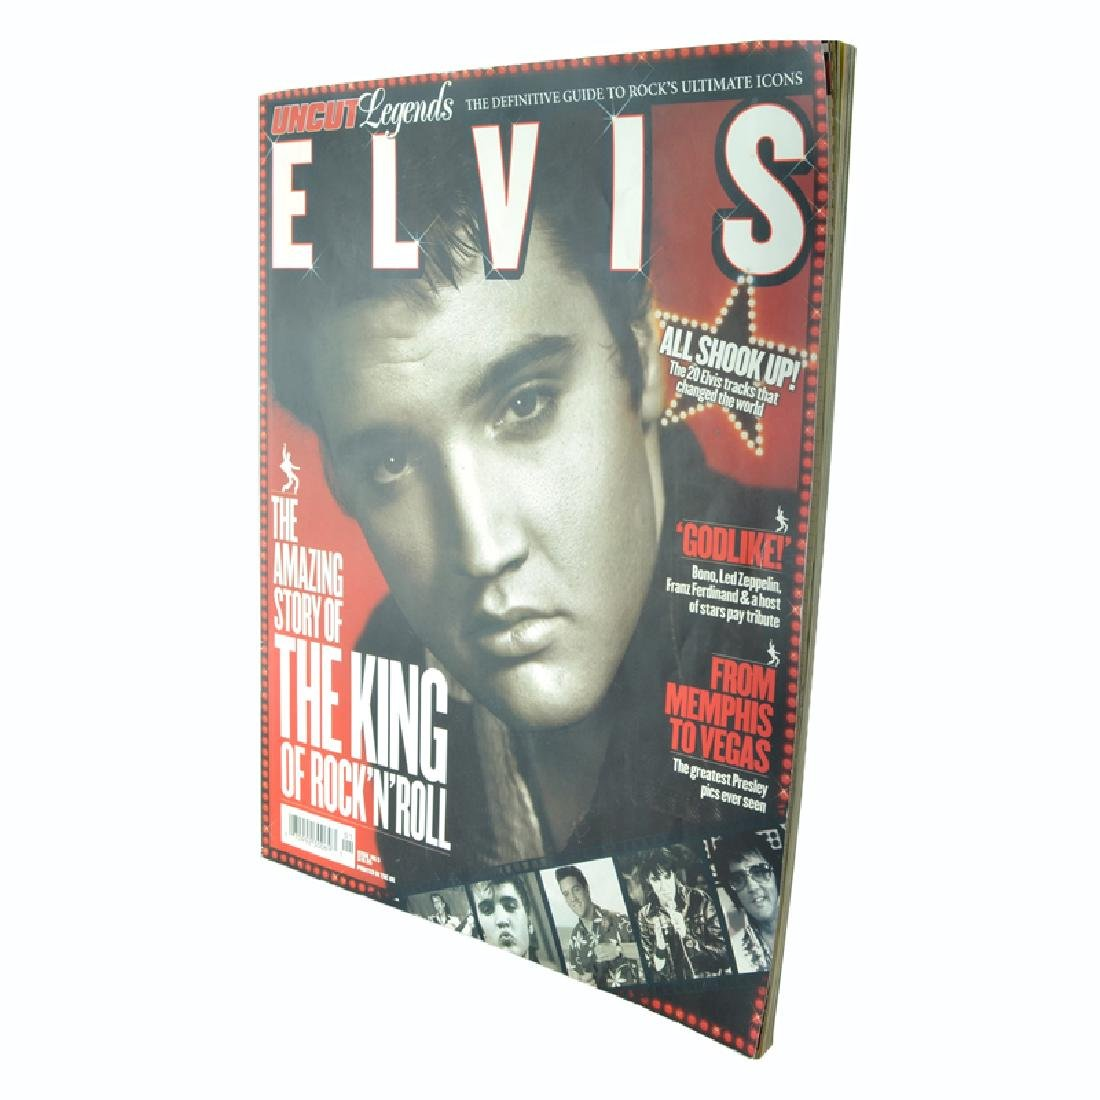 Uncut Legends Vol. 5 - Elvis (Paperback)